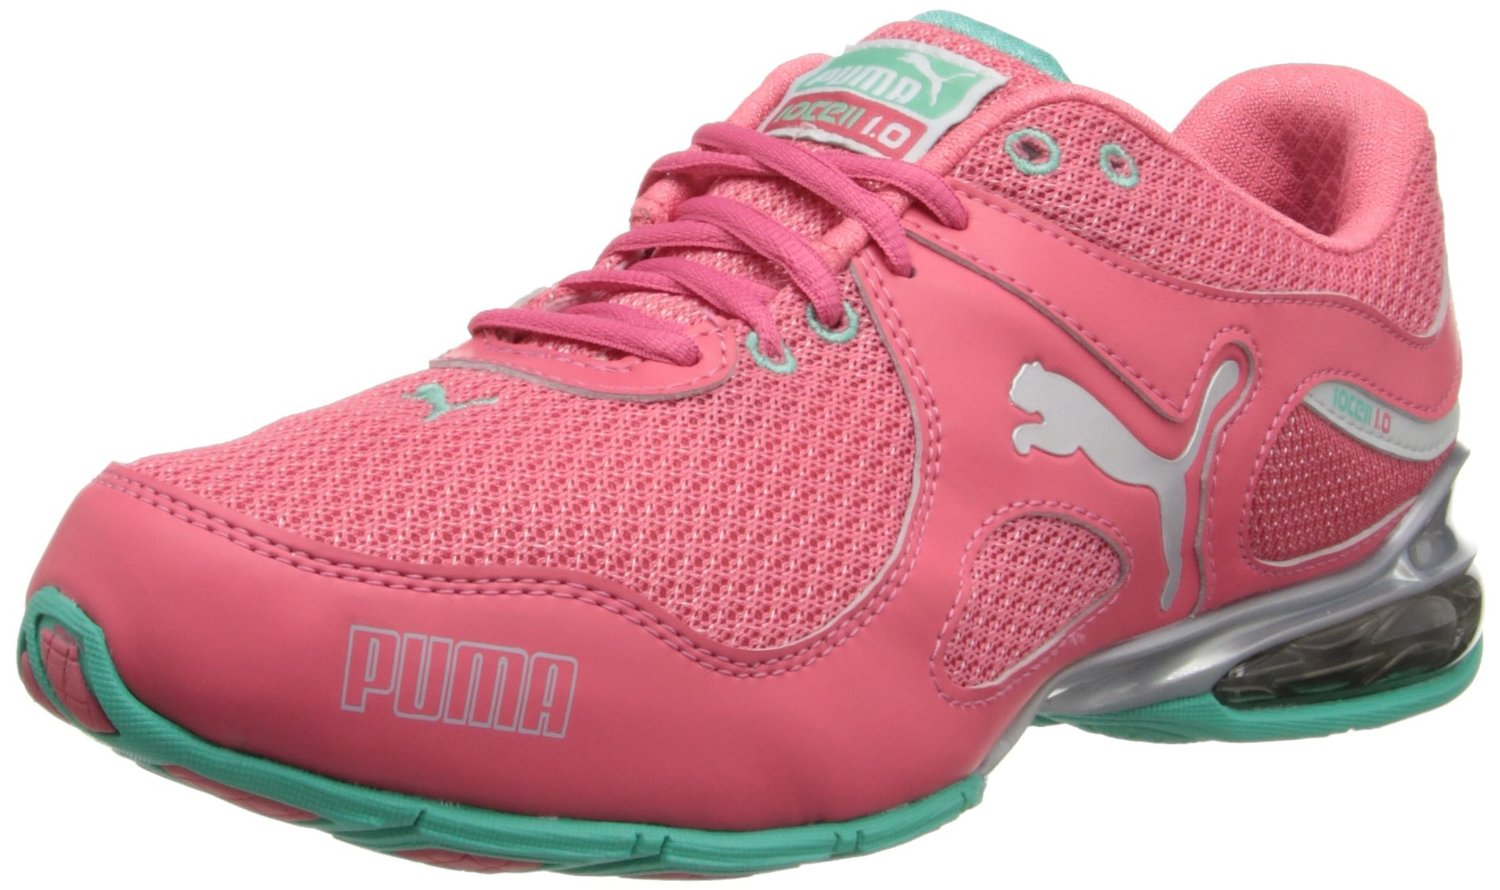 fb9334d08bca ... coupon for puma cell riaze cross training shoe in calypso coral  electric green glacier gray ad84c